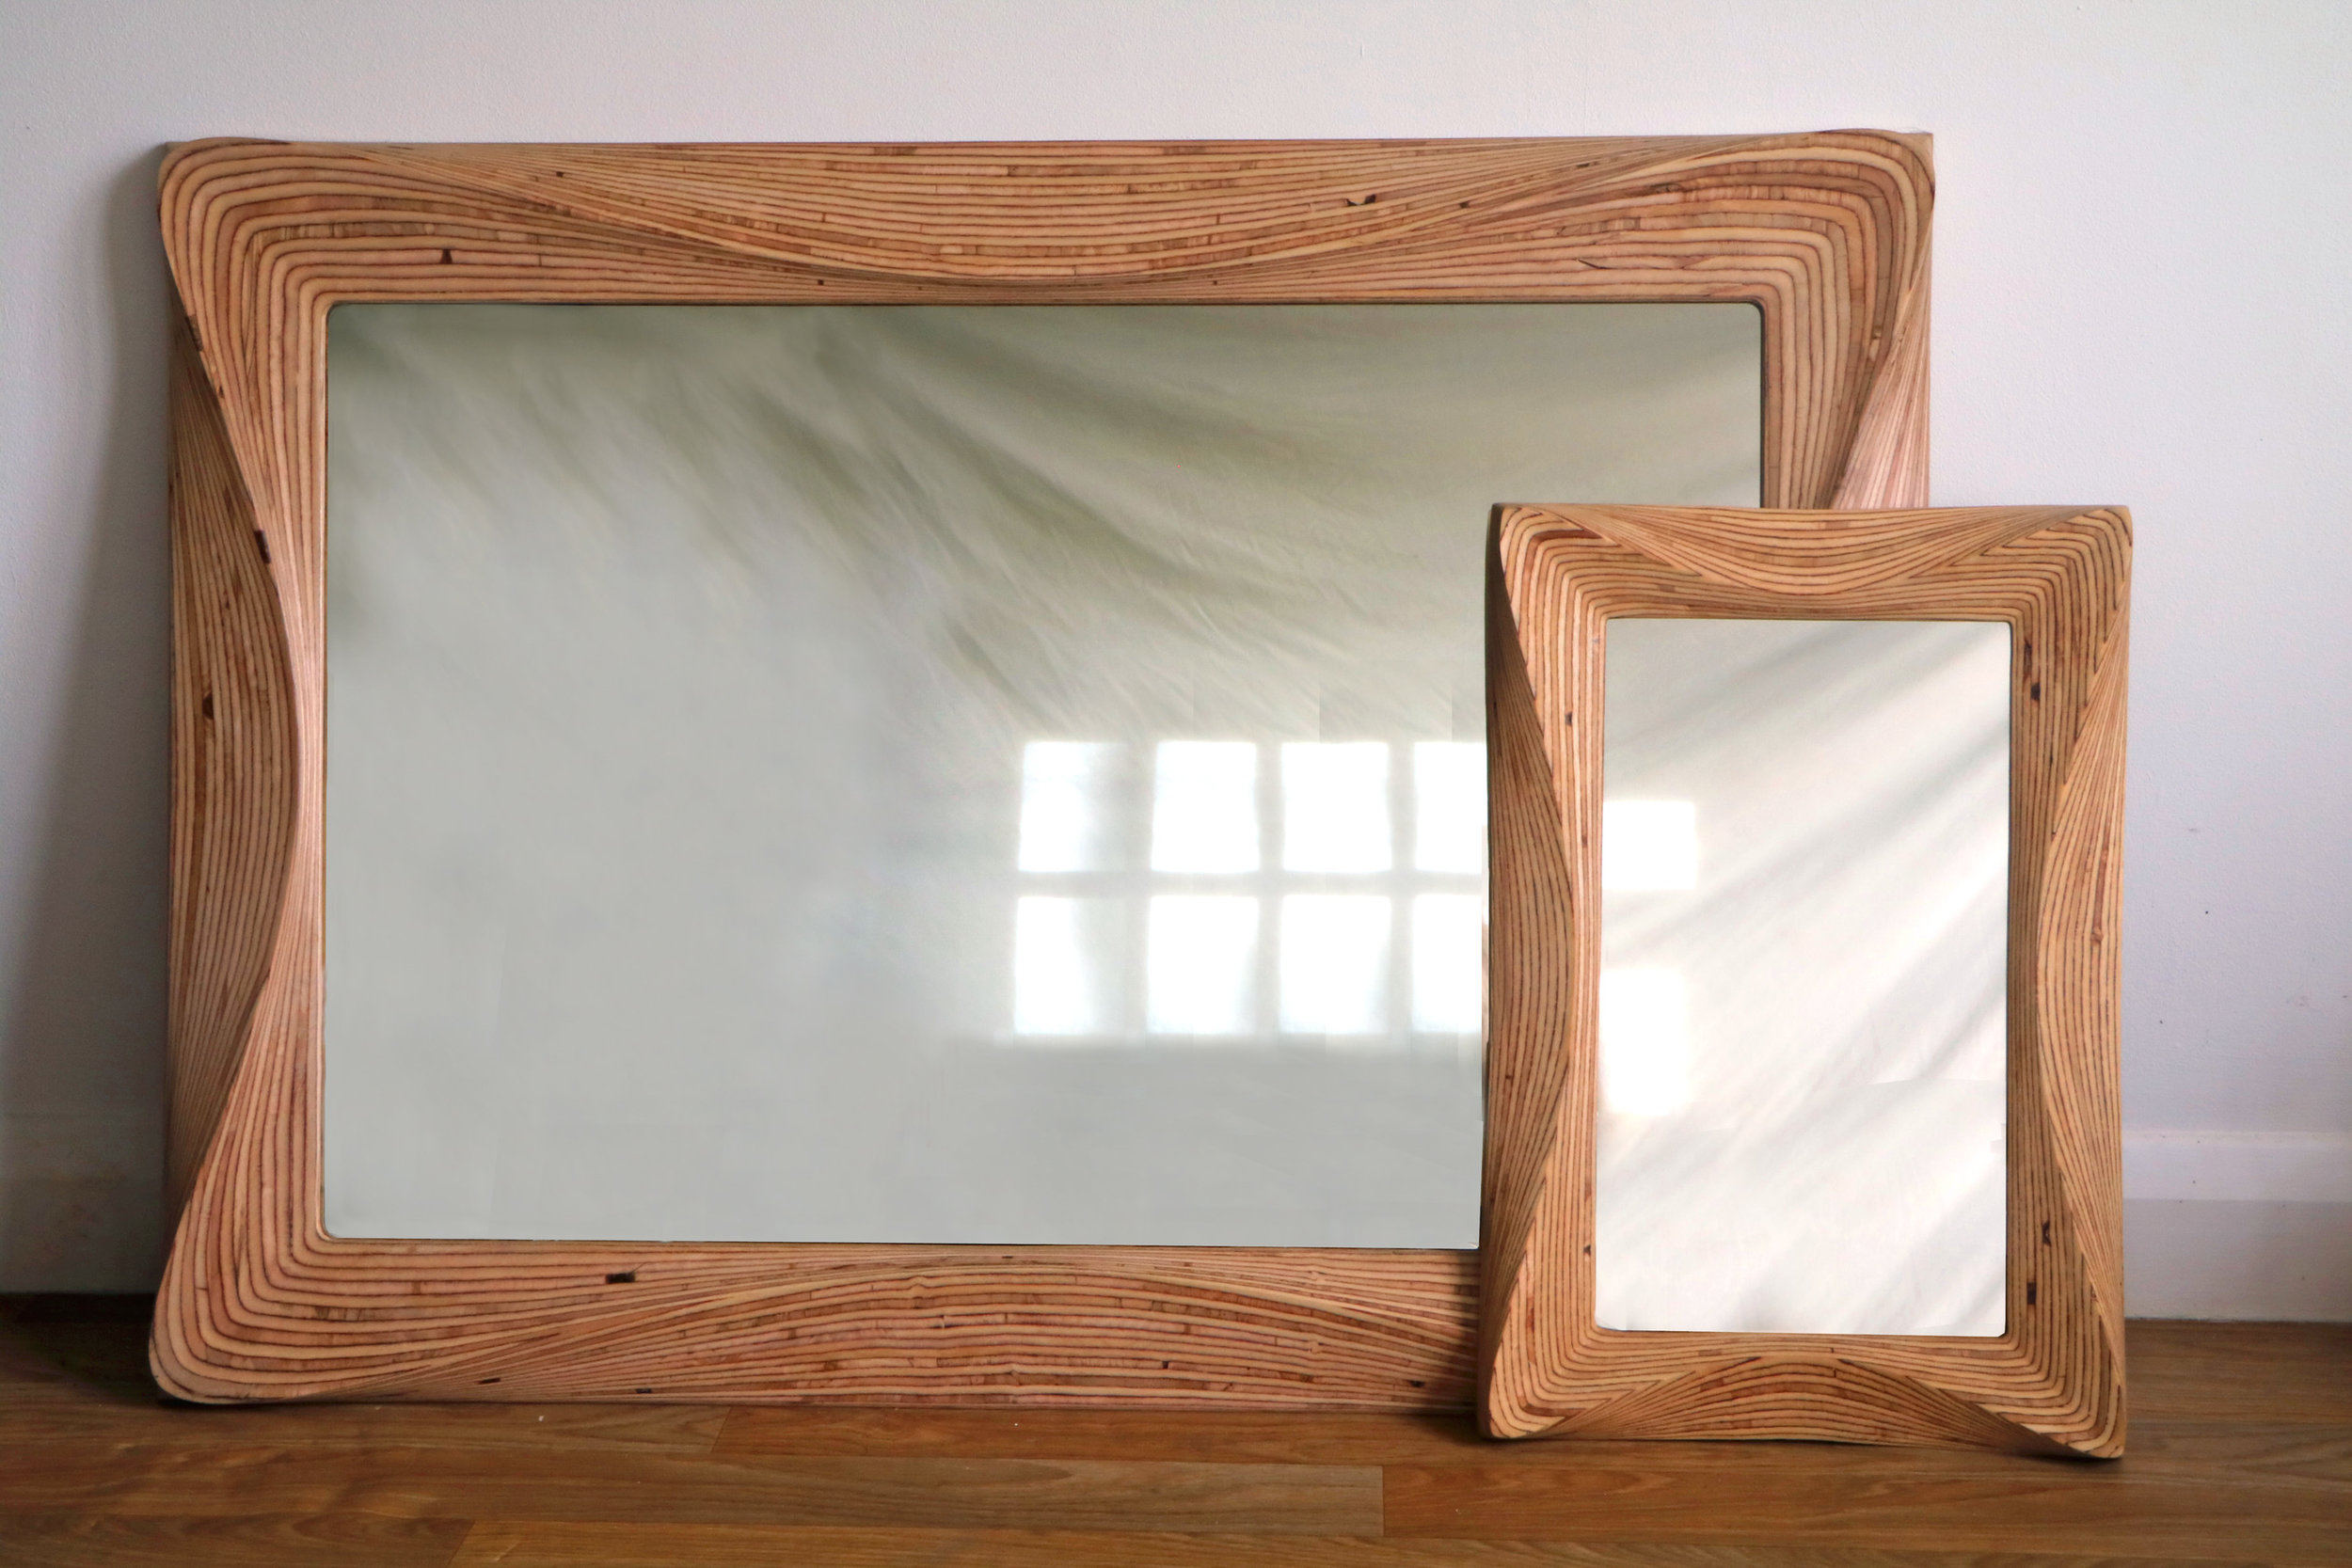 Large wooden living room mirror